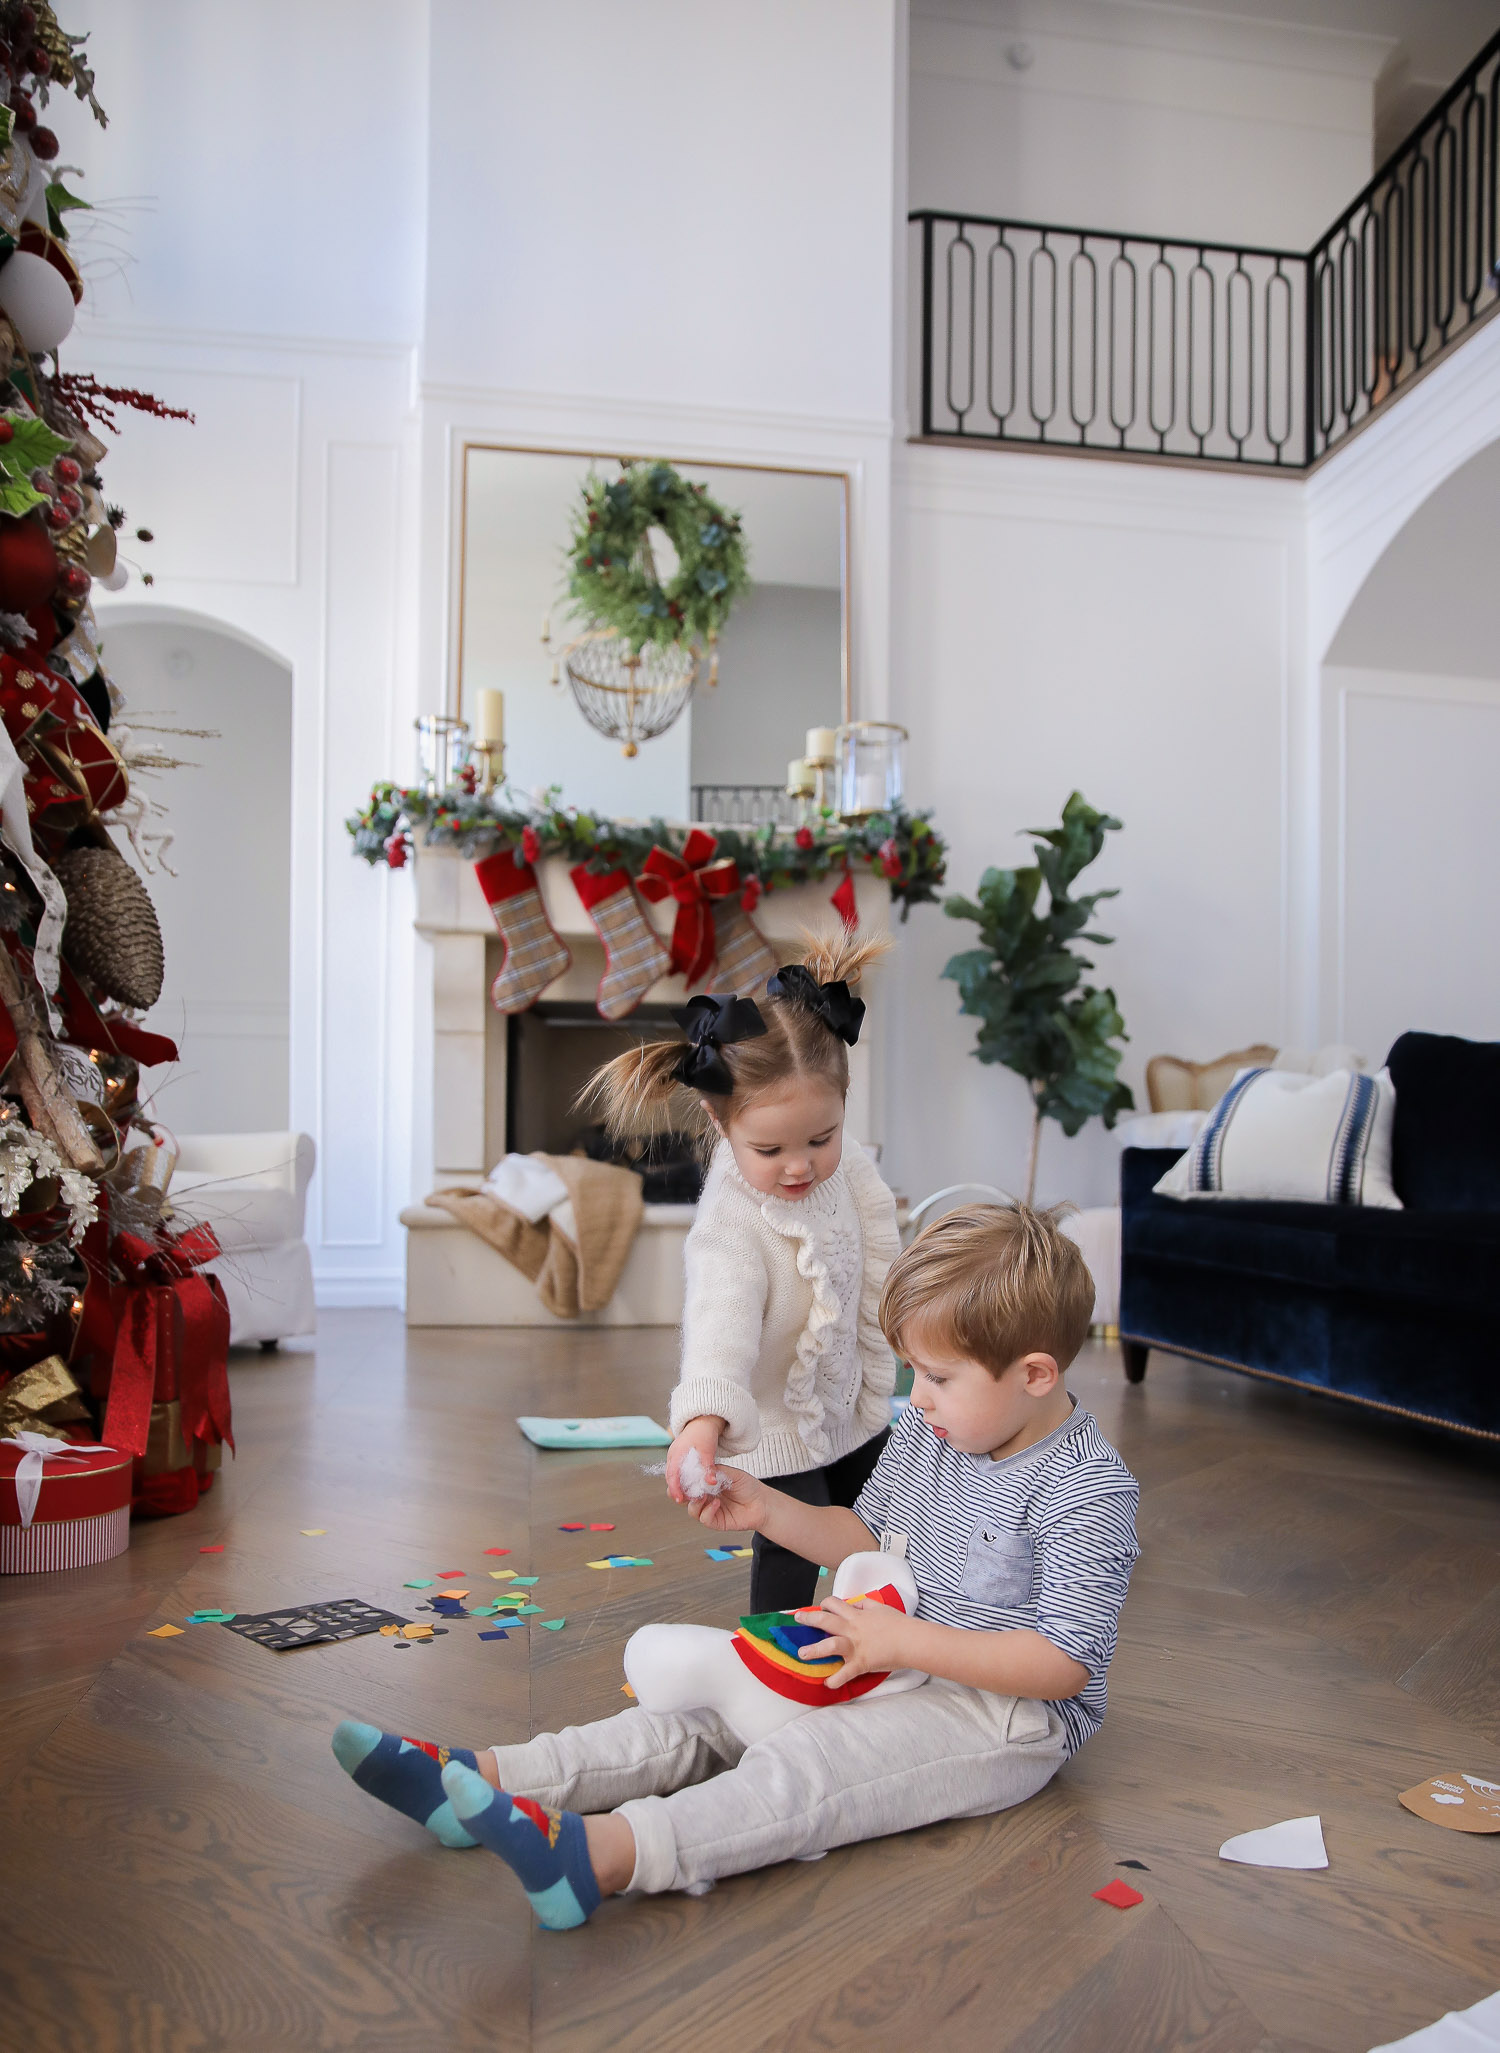 Educational Gift Ideas for Kids by popular US lifestyle blog, The Sweetest Thing: image of a boy and girl playing with KiwiCo toys.